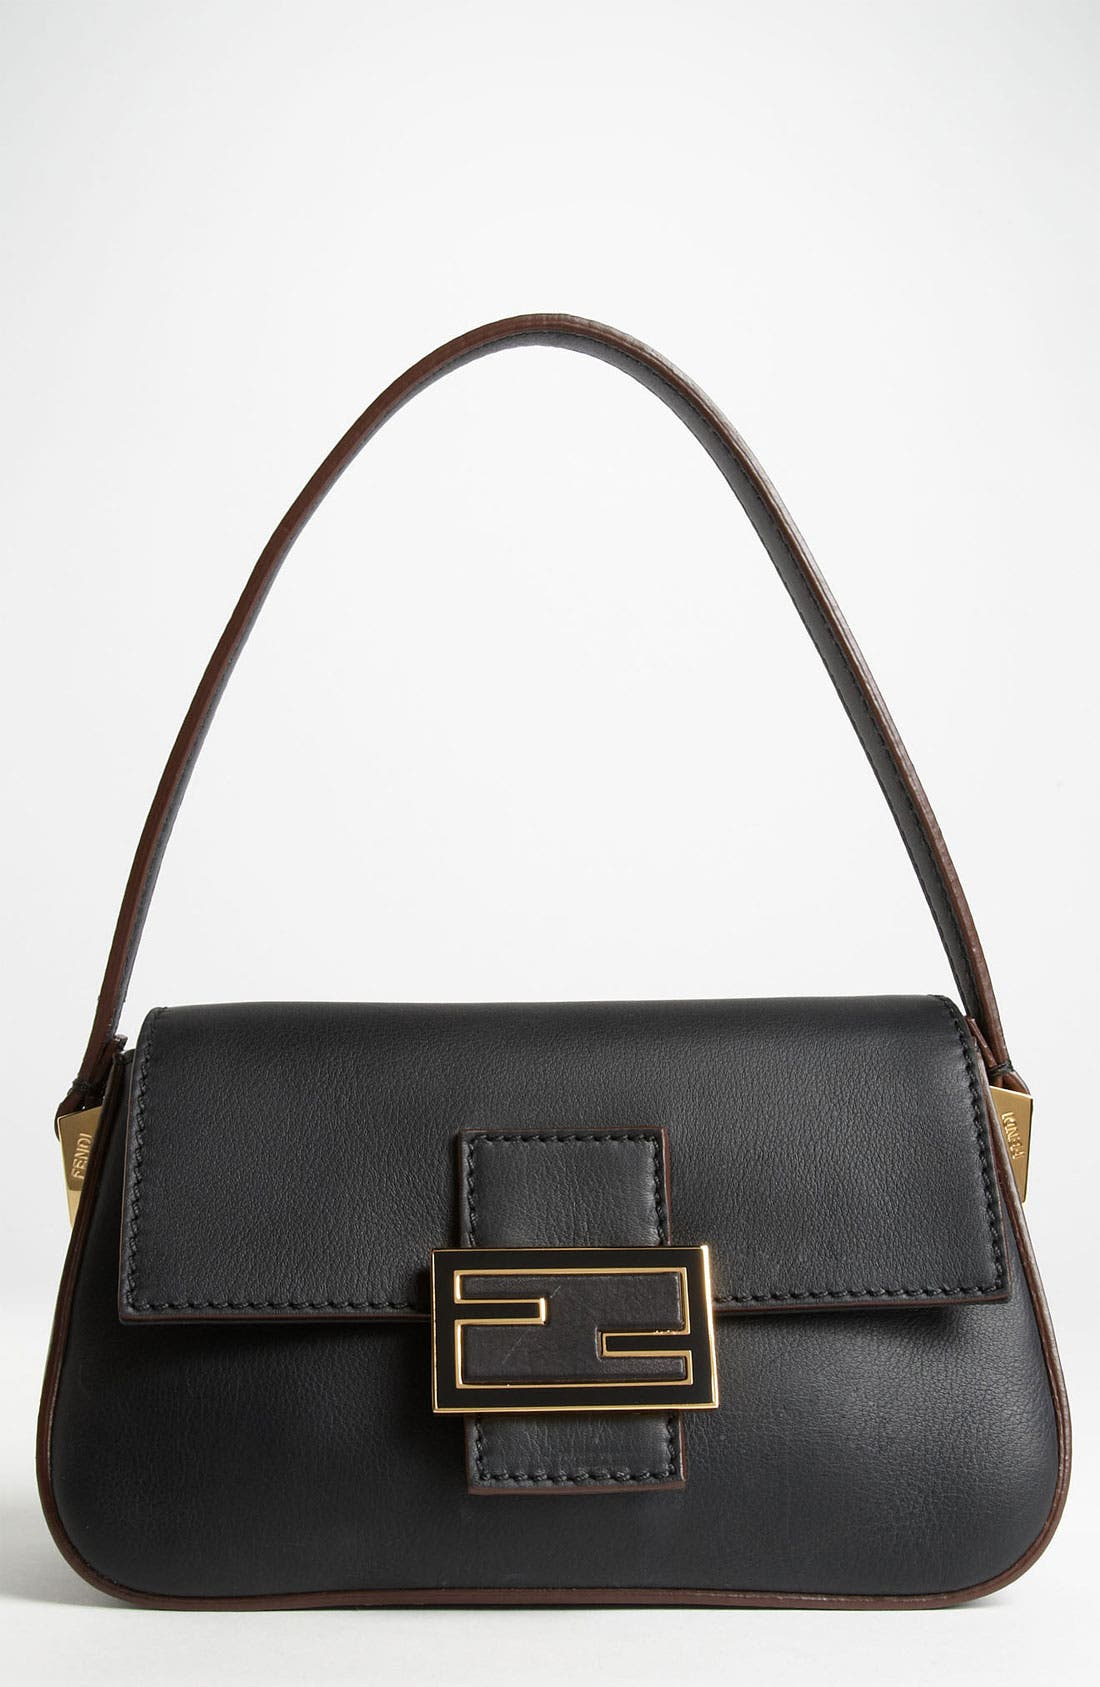 Main Image - Fendi 'Mamma - Mini' Leather Shoulder Bag